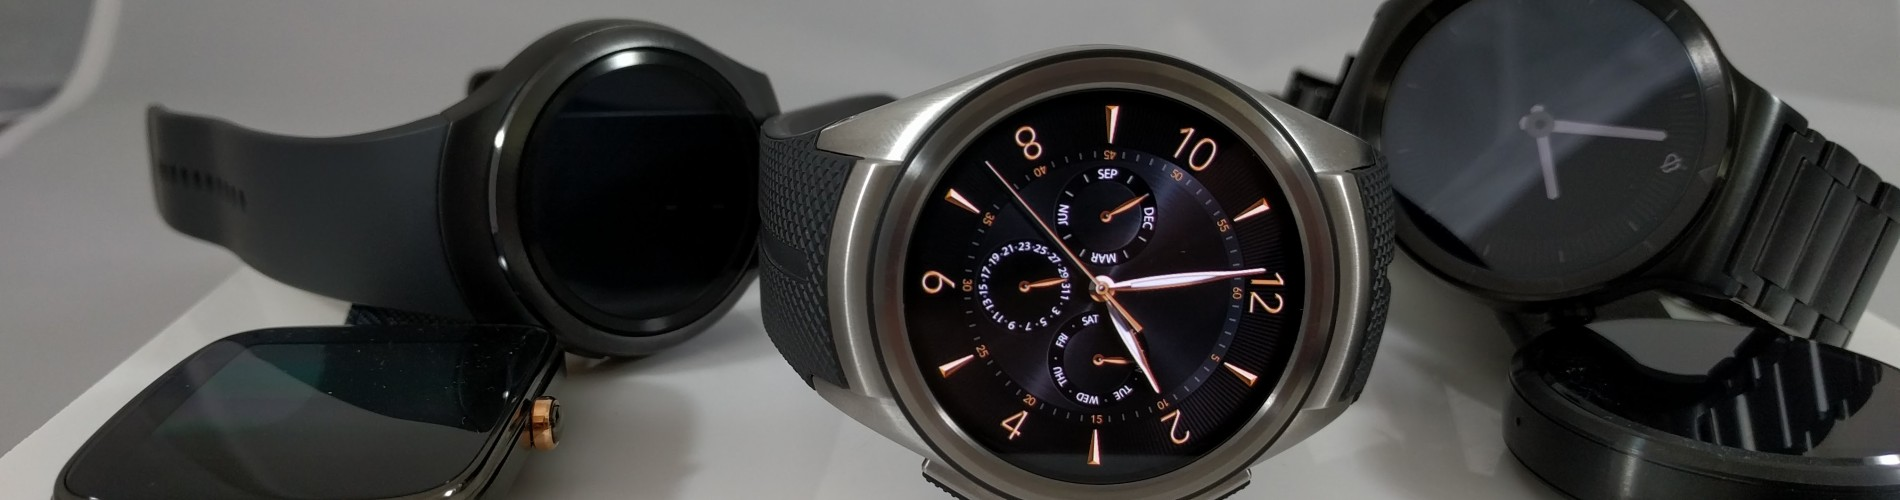 LG Urbane 2nd Edition Watch: One of the best Android Wear watches you may never get to own (Review)